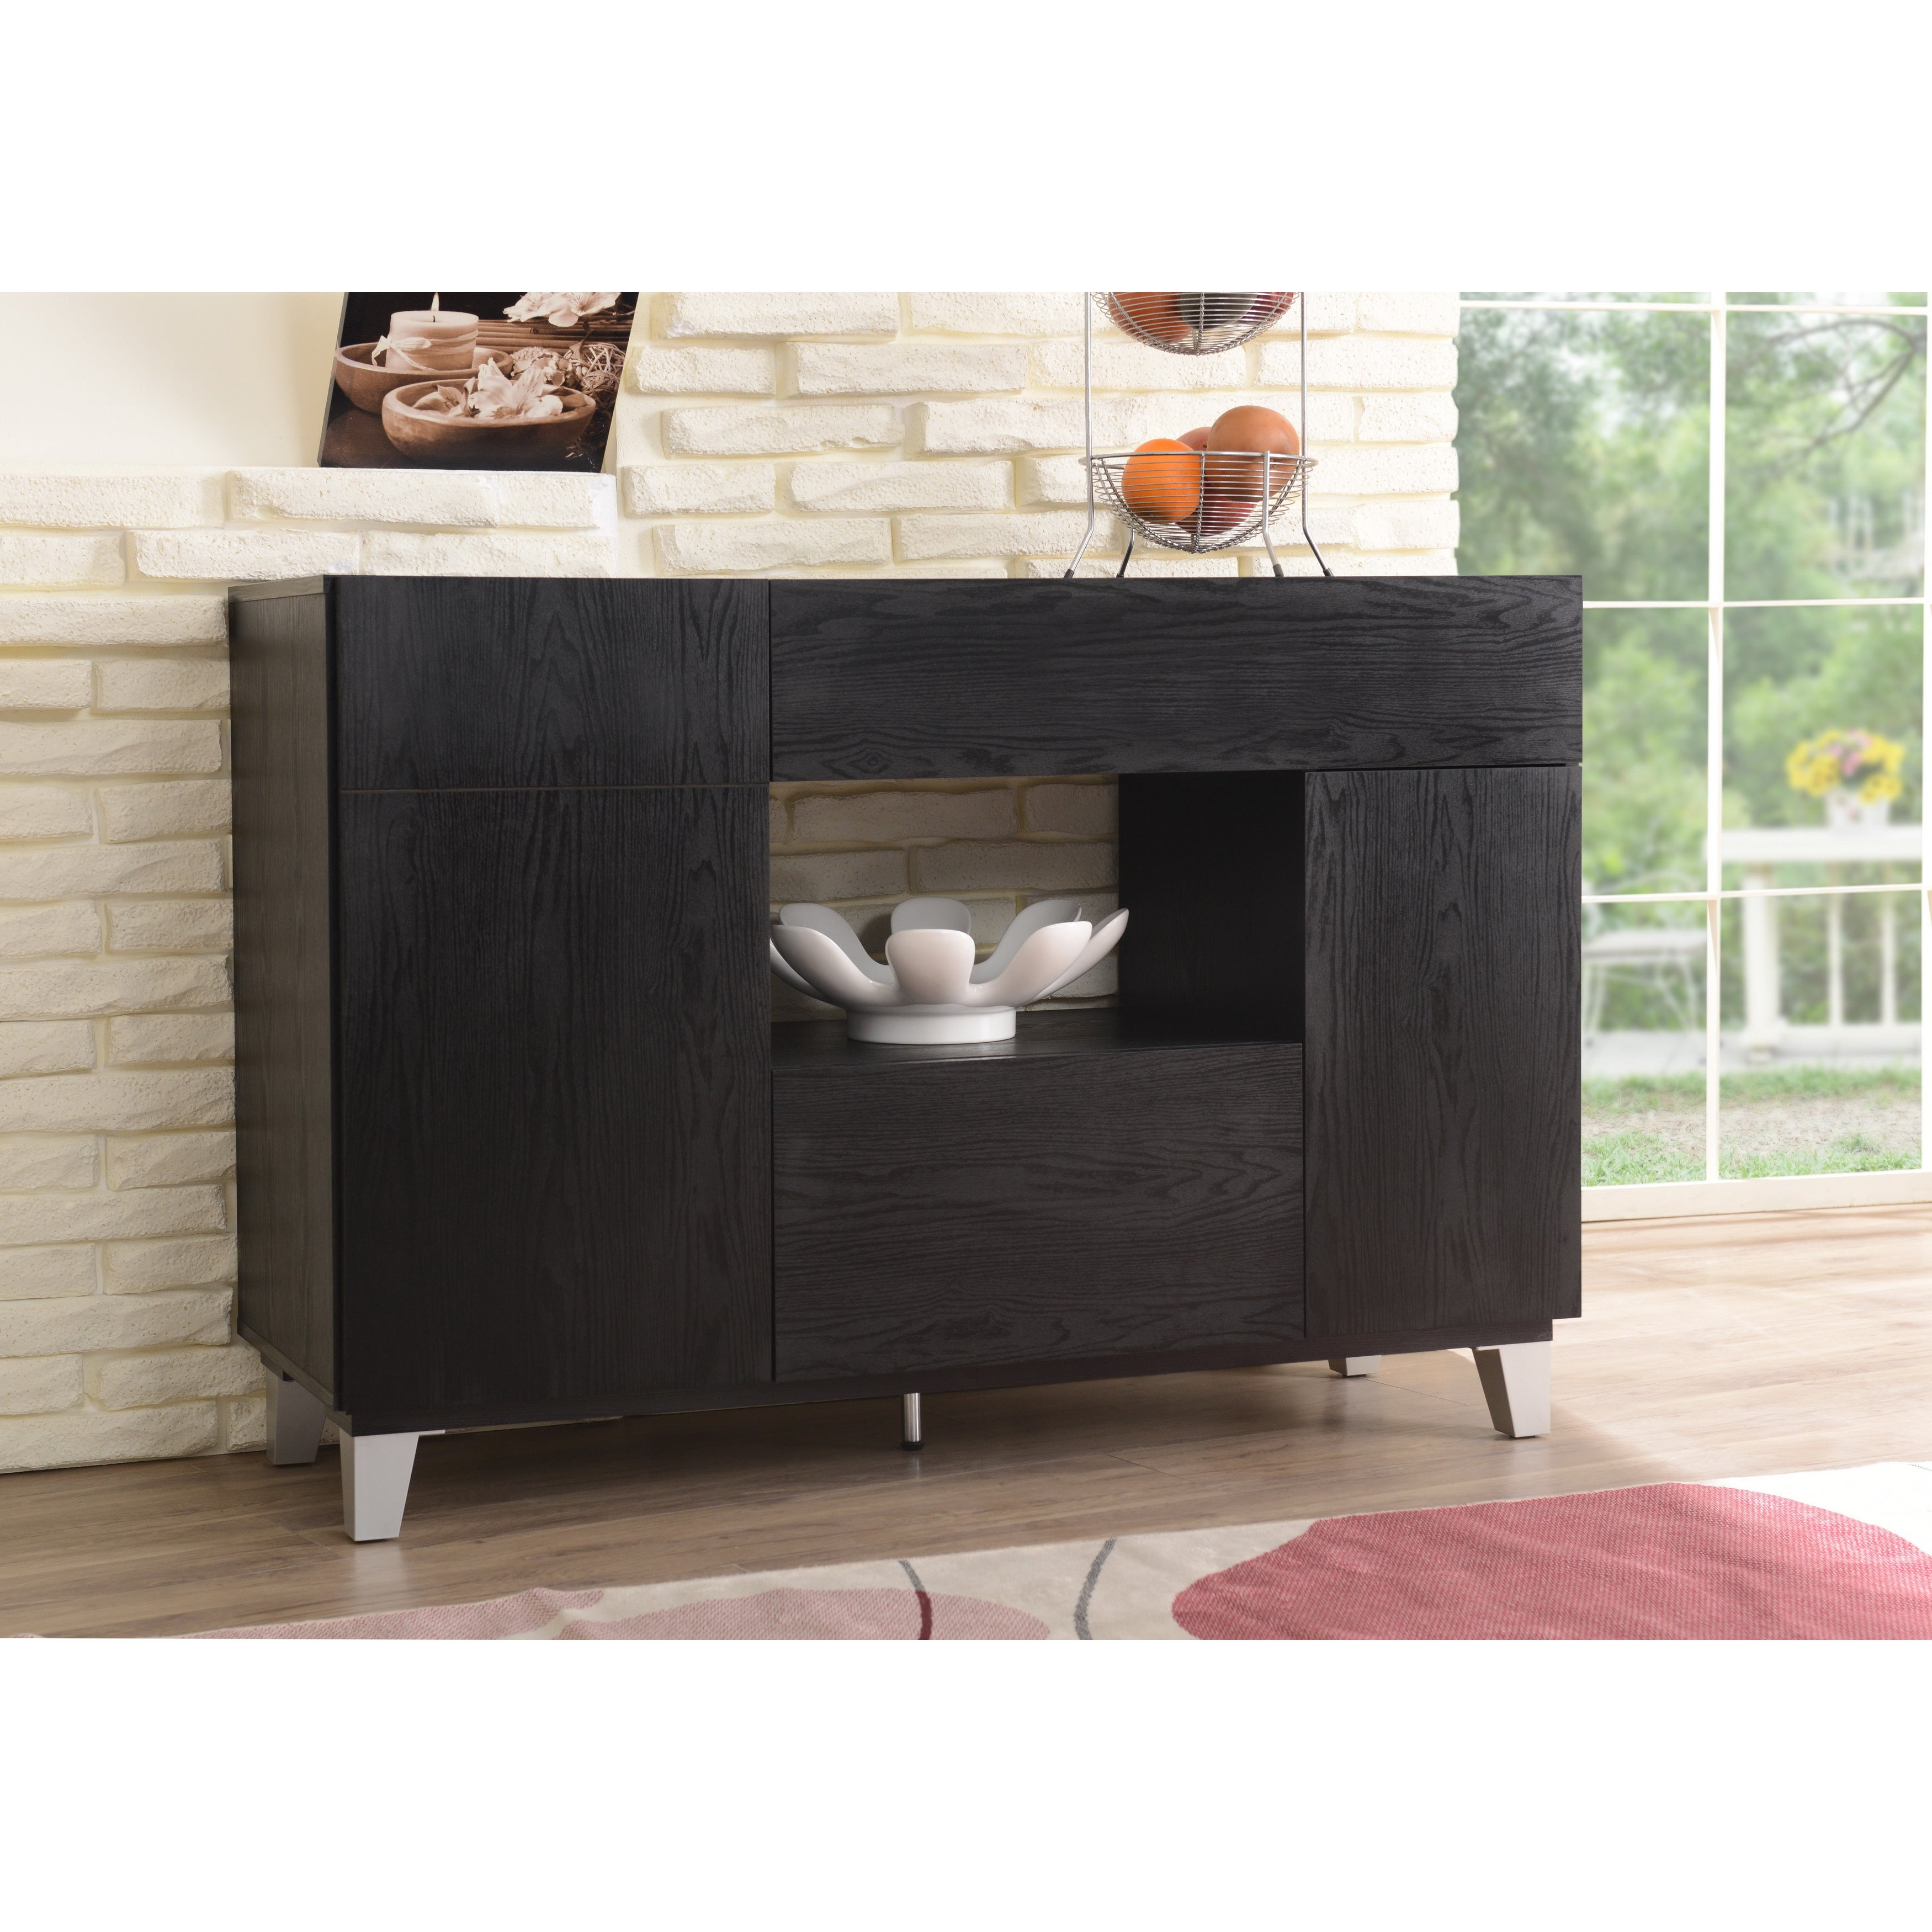 Carrera Contemporary 47 Inch Black Dining Buffet Storage Serverfoa With Carrera Contemporary Black Dining Buffets (View 6 of 20)